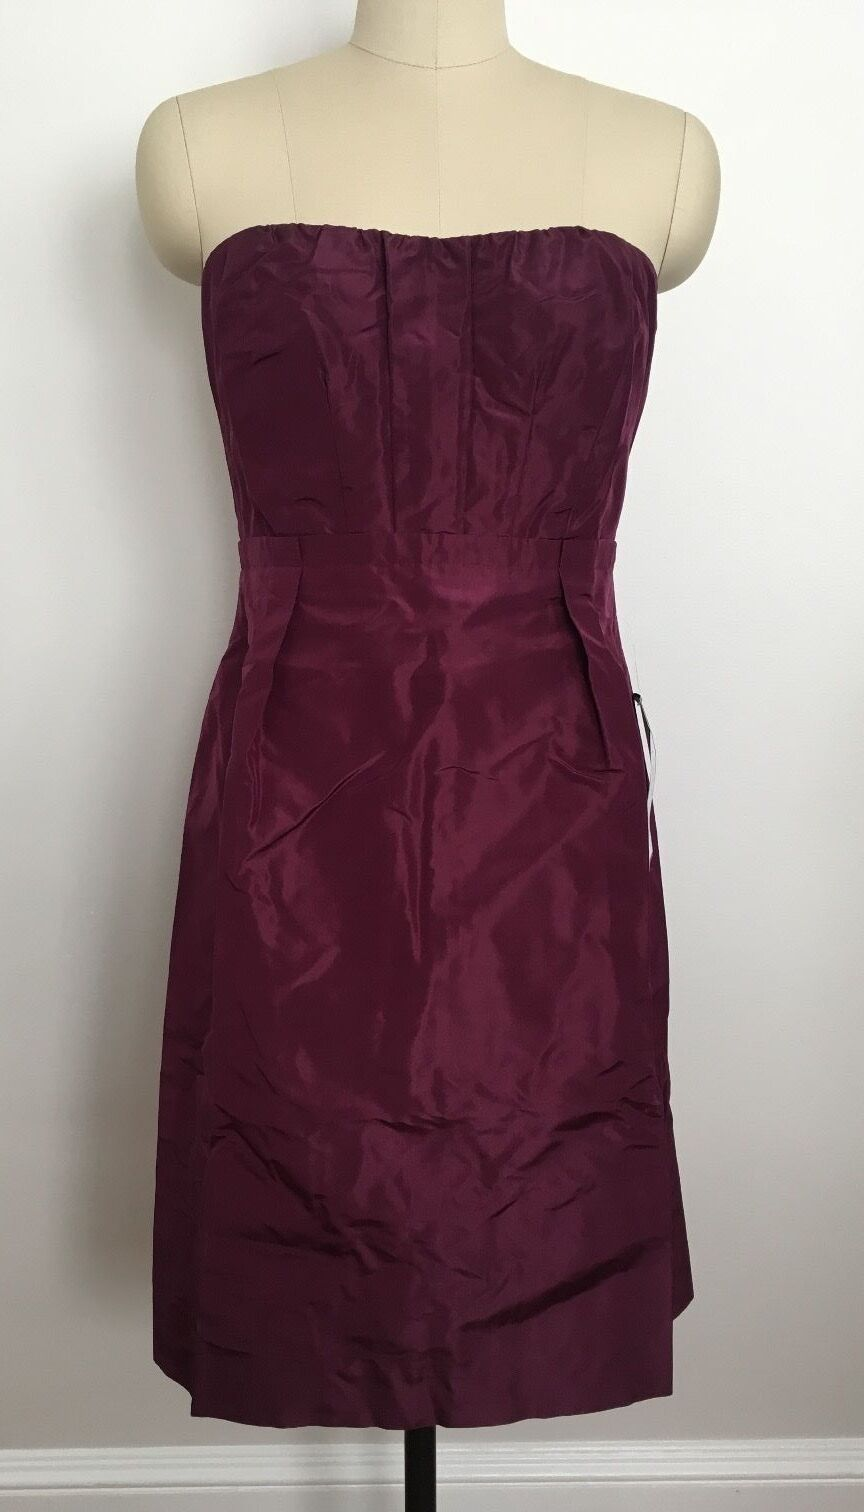 NWT J.Crew Silk Taffeta Gracen Bridesmaid Dress Spied Wine Storlek 10 Petite 10P